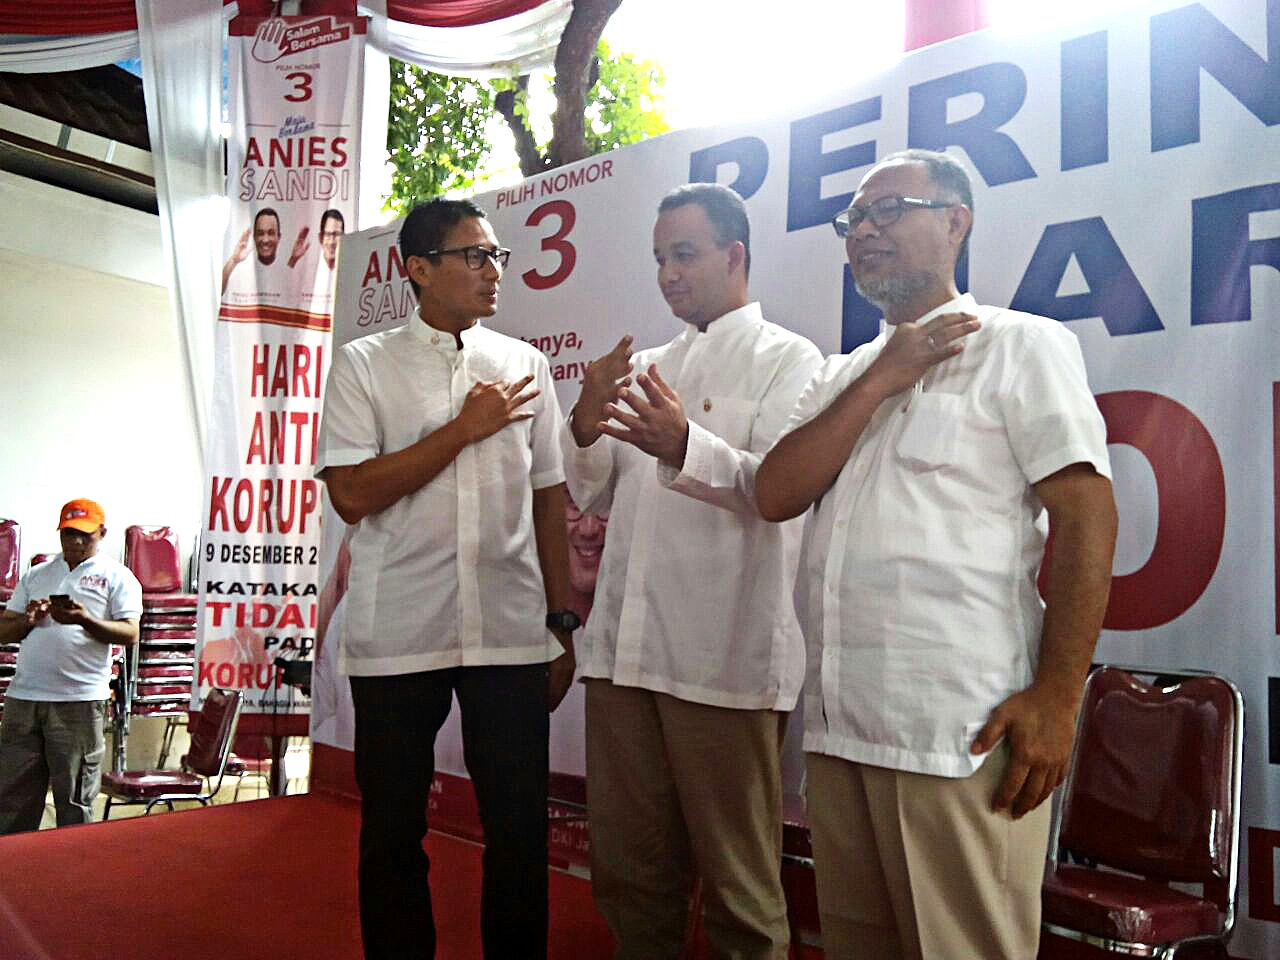 Anies appoints campaign team member to head anticorruption team